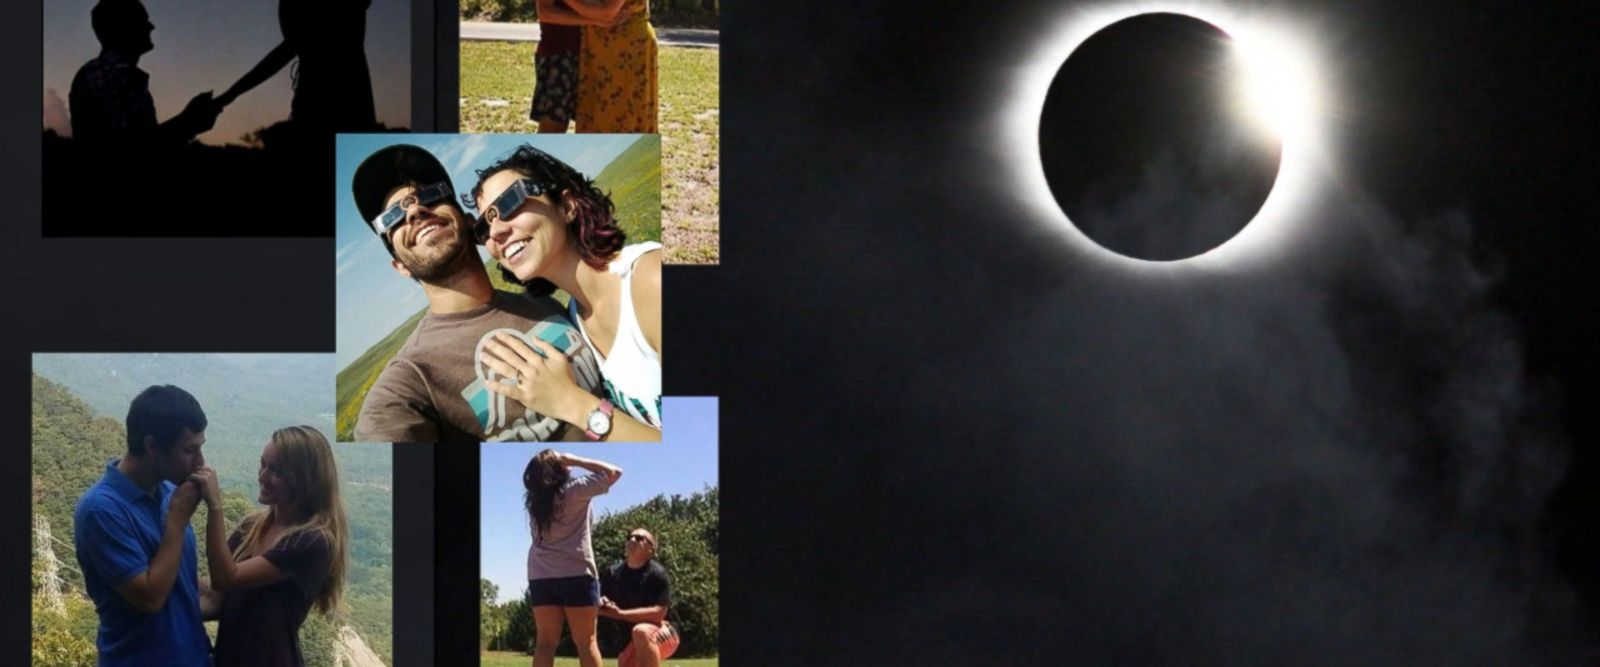 Love was in the air for many couples who got engaged during the total solar eclipse.